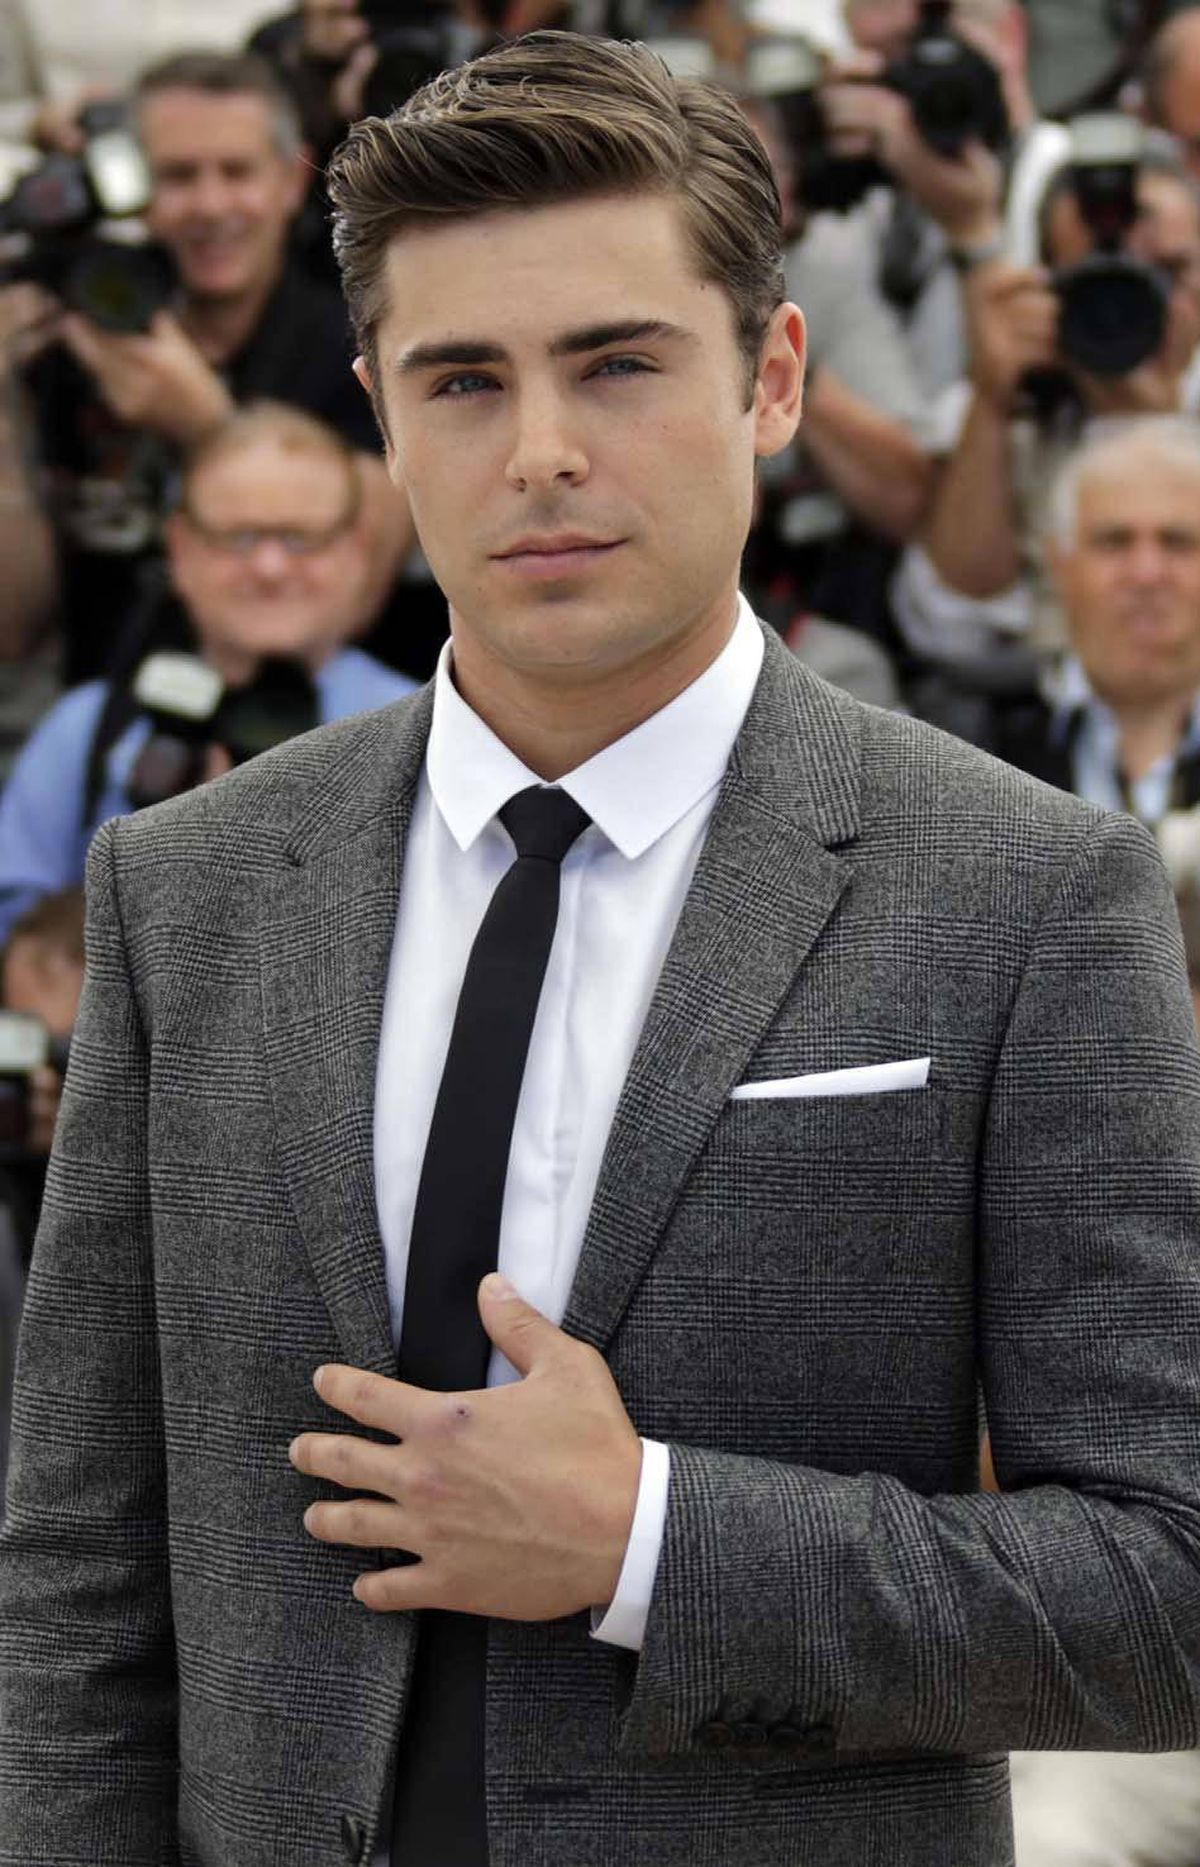 Zac Efron, seen here at the Cannes Film Festival in Cannes, France, last week, is all like, I don't think that guy was, um, actually dancing. That's okay, Zac, you're good people. These next few slides will help you understand Canada a little better.